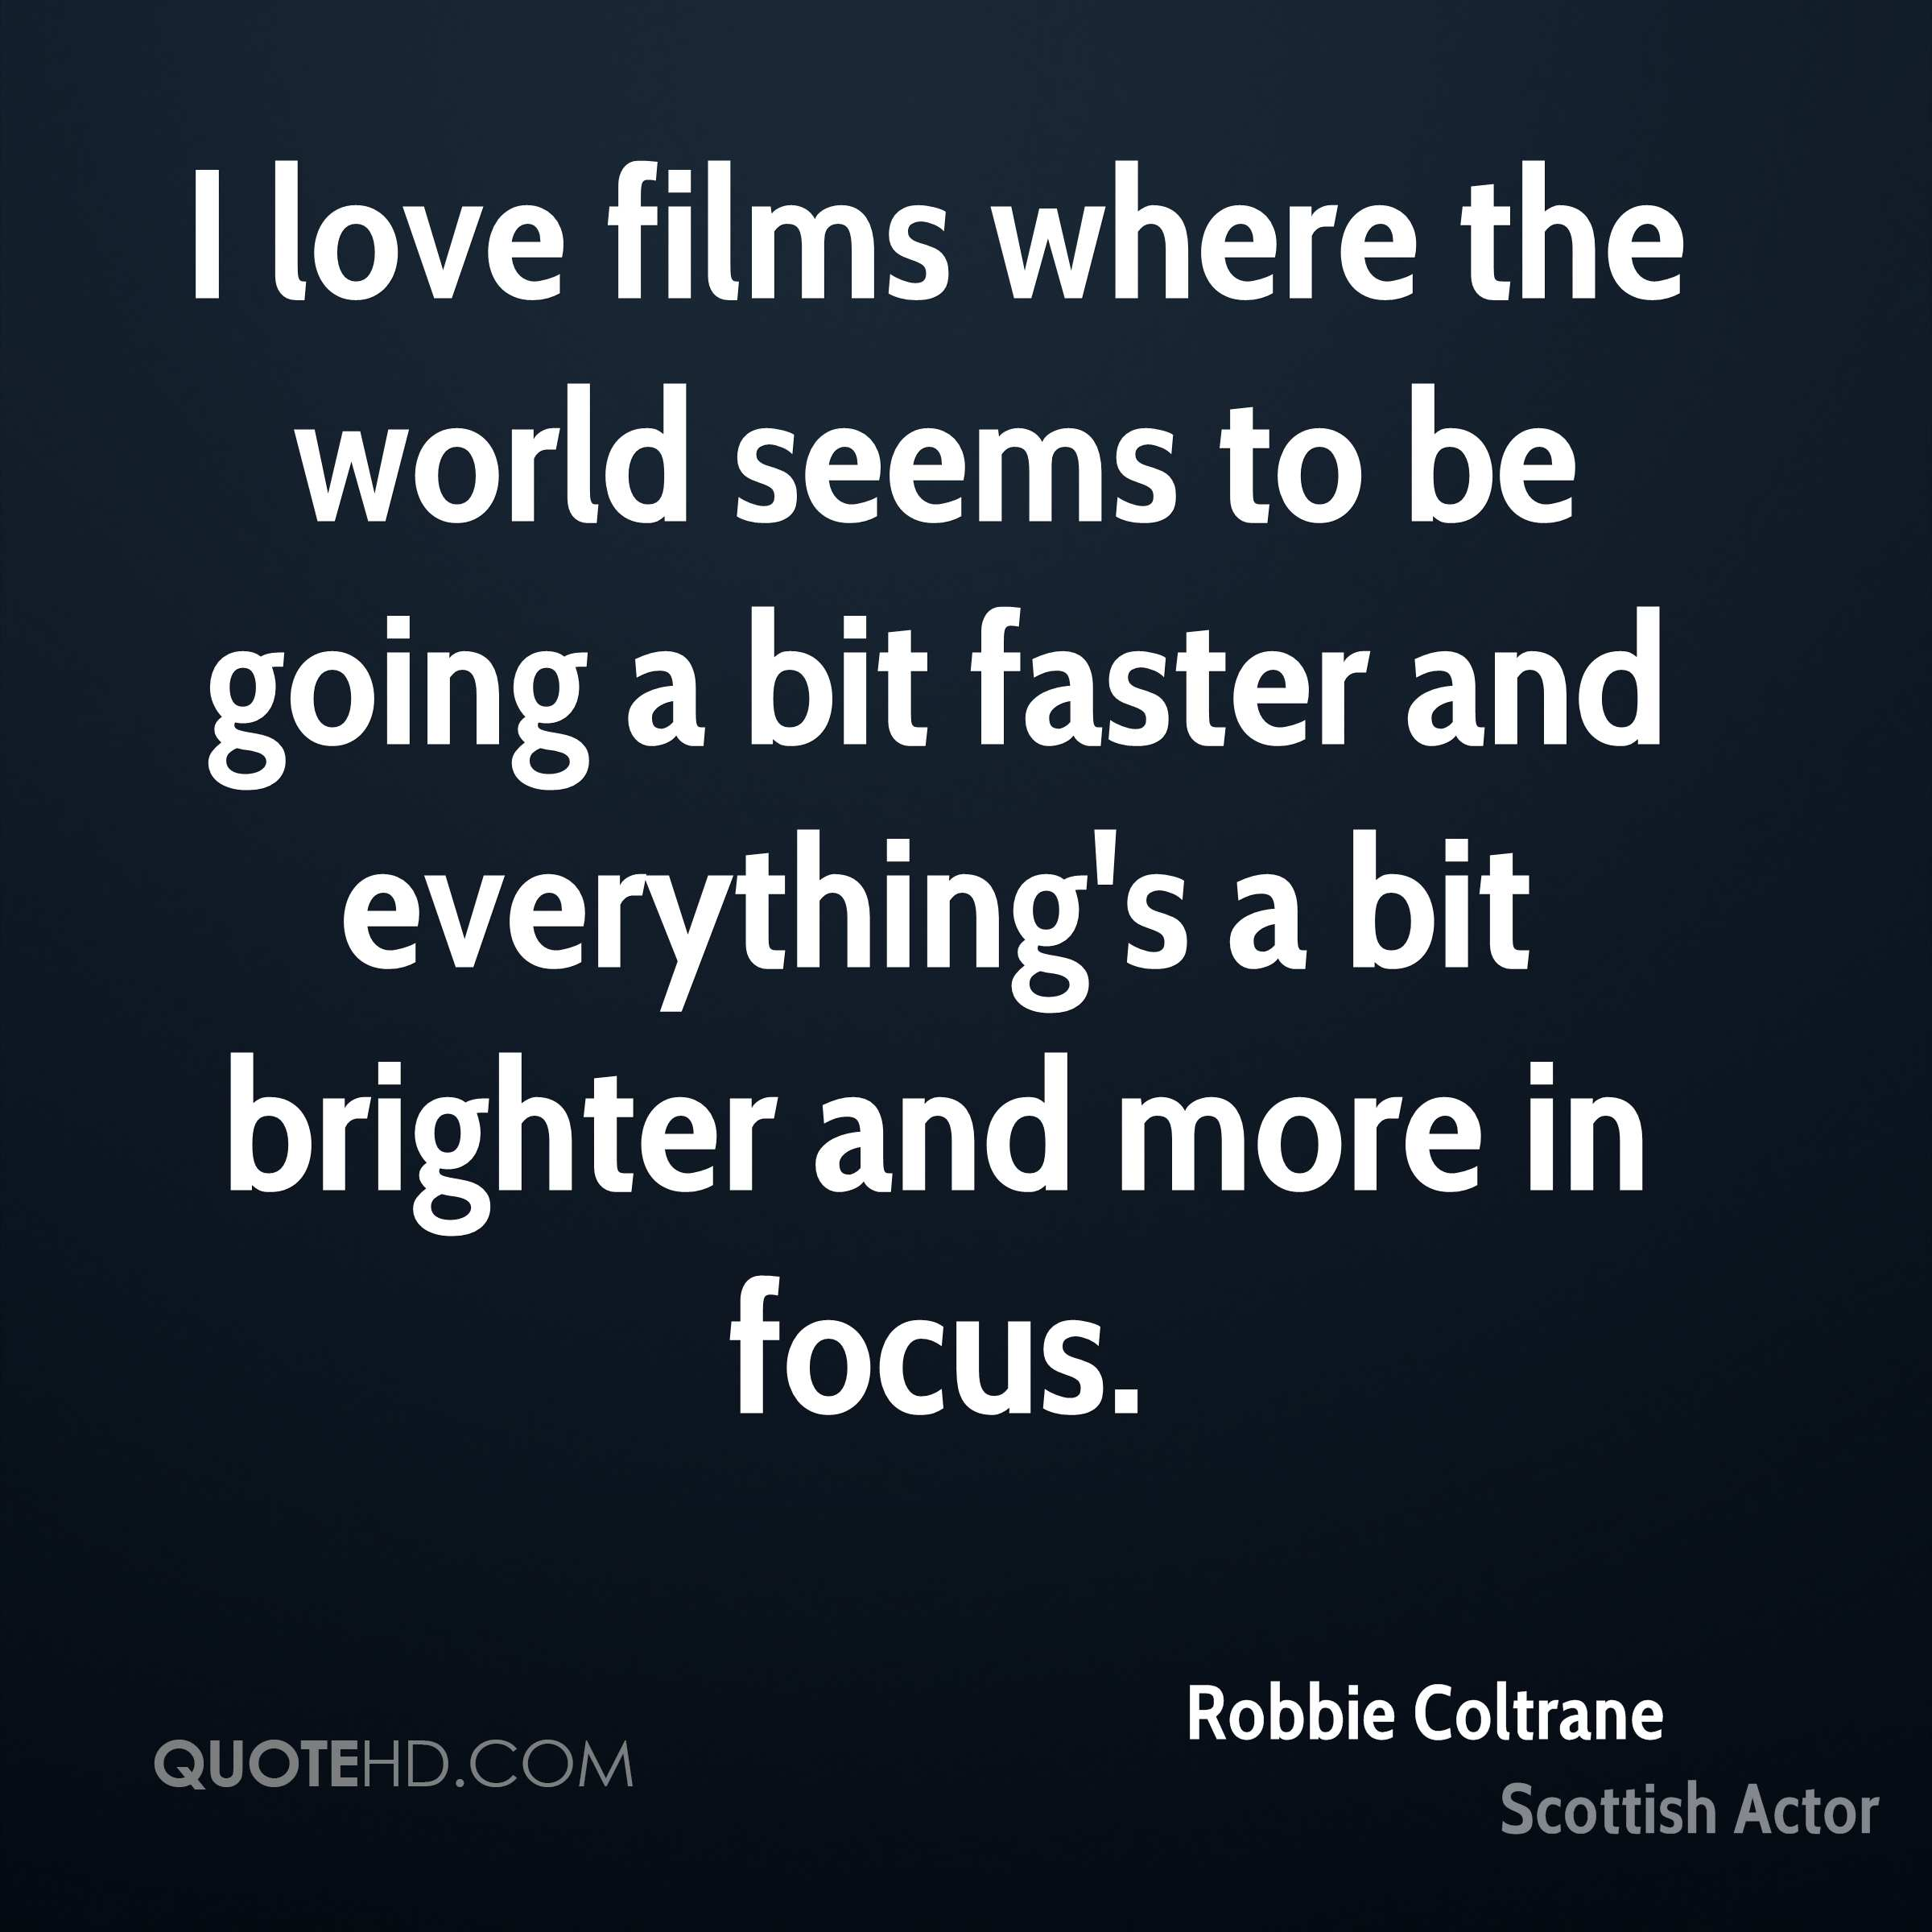 I love films where the world seems to be going a bit faster and everything's a bit brighter and more in focus.